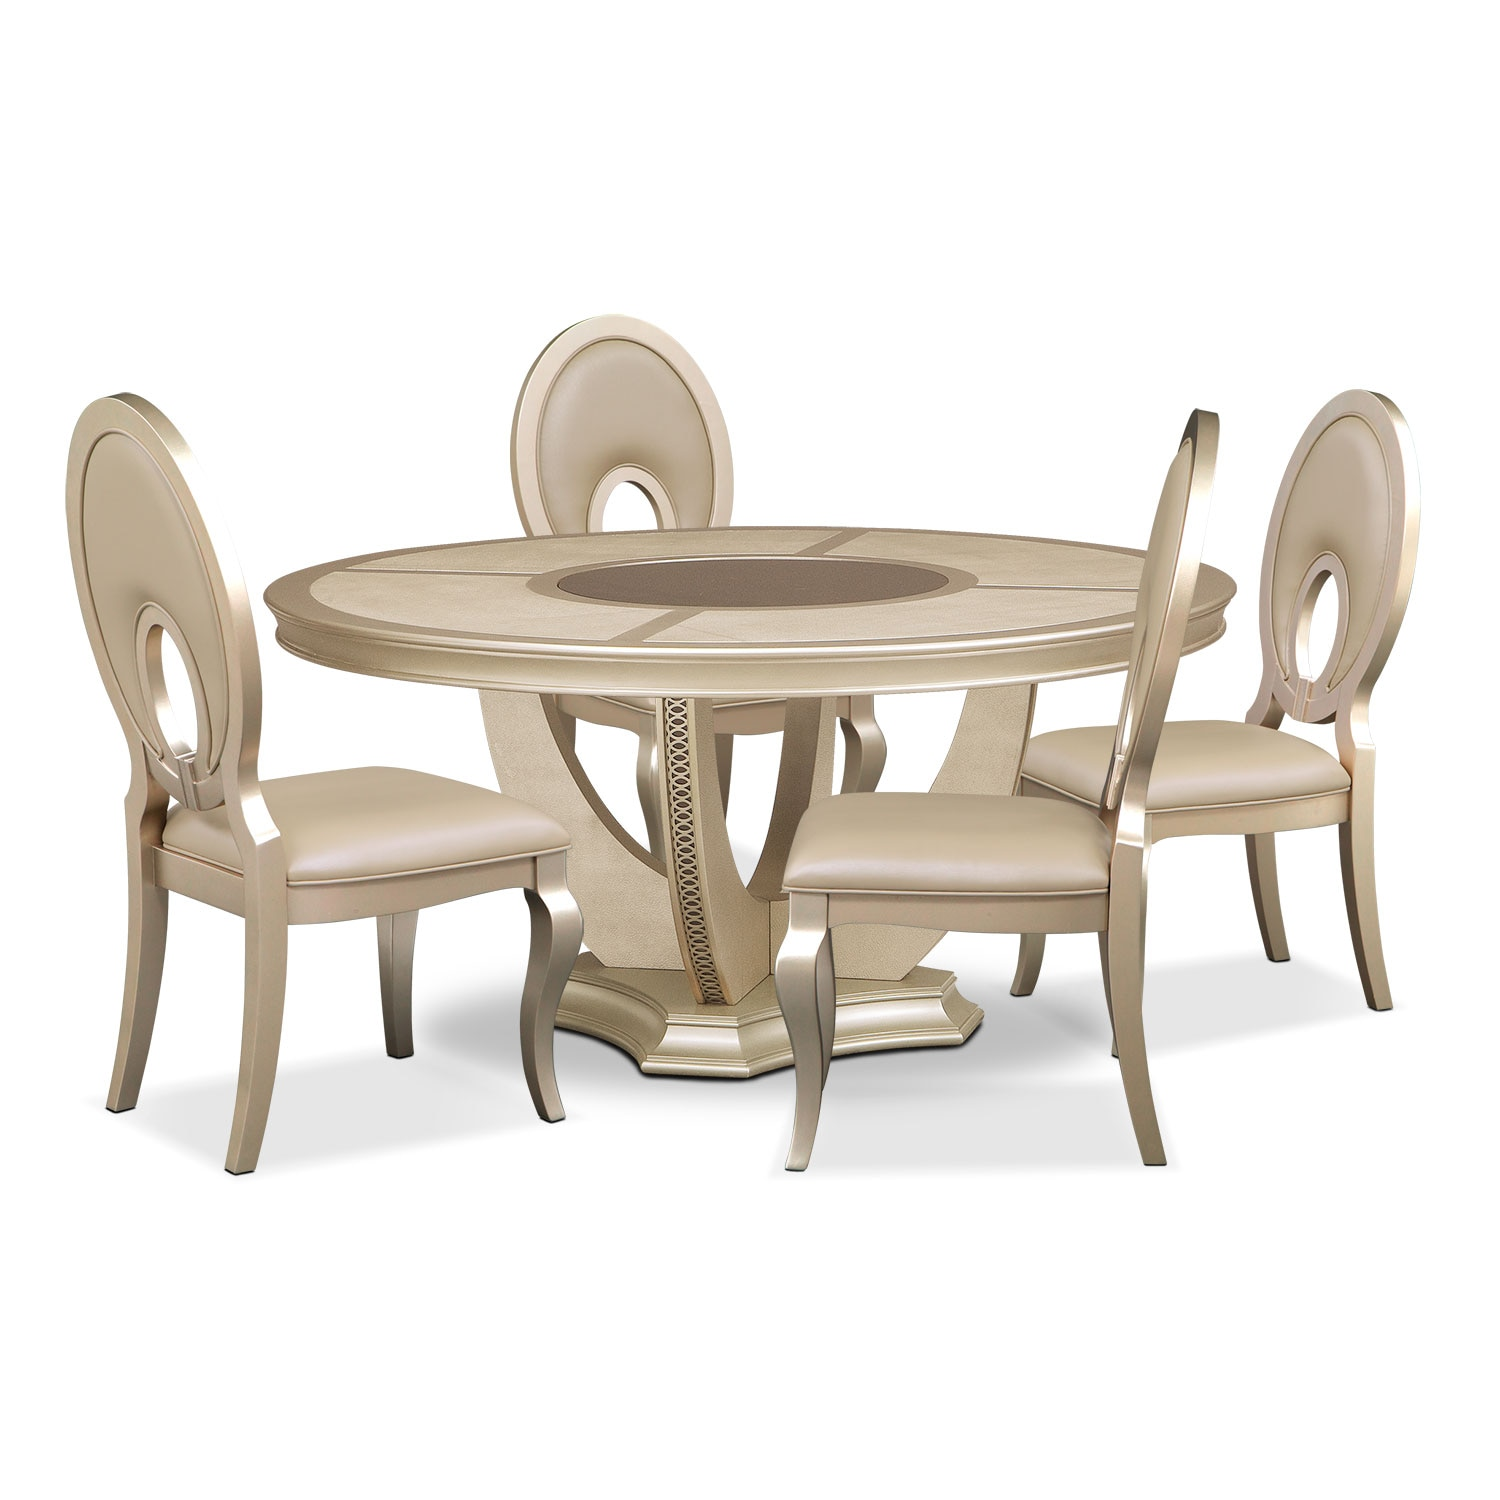 Round Dinette Tables: Allegro Round Table And 4 Chairs - Platinum